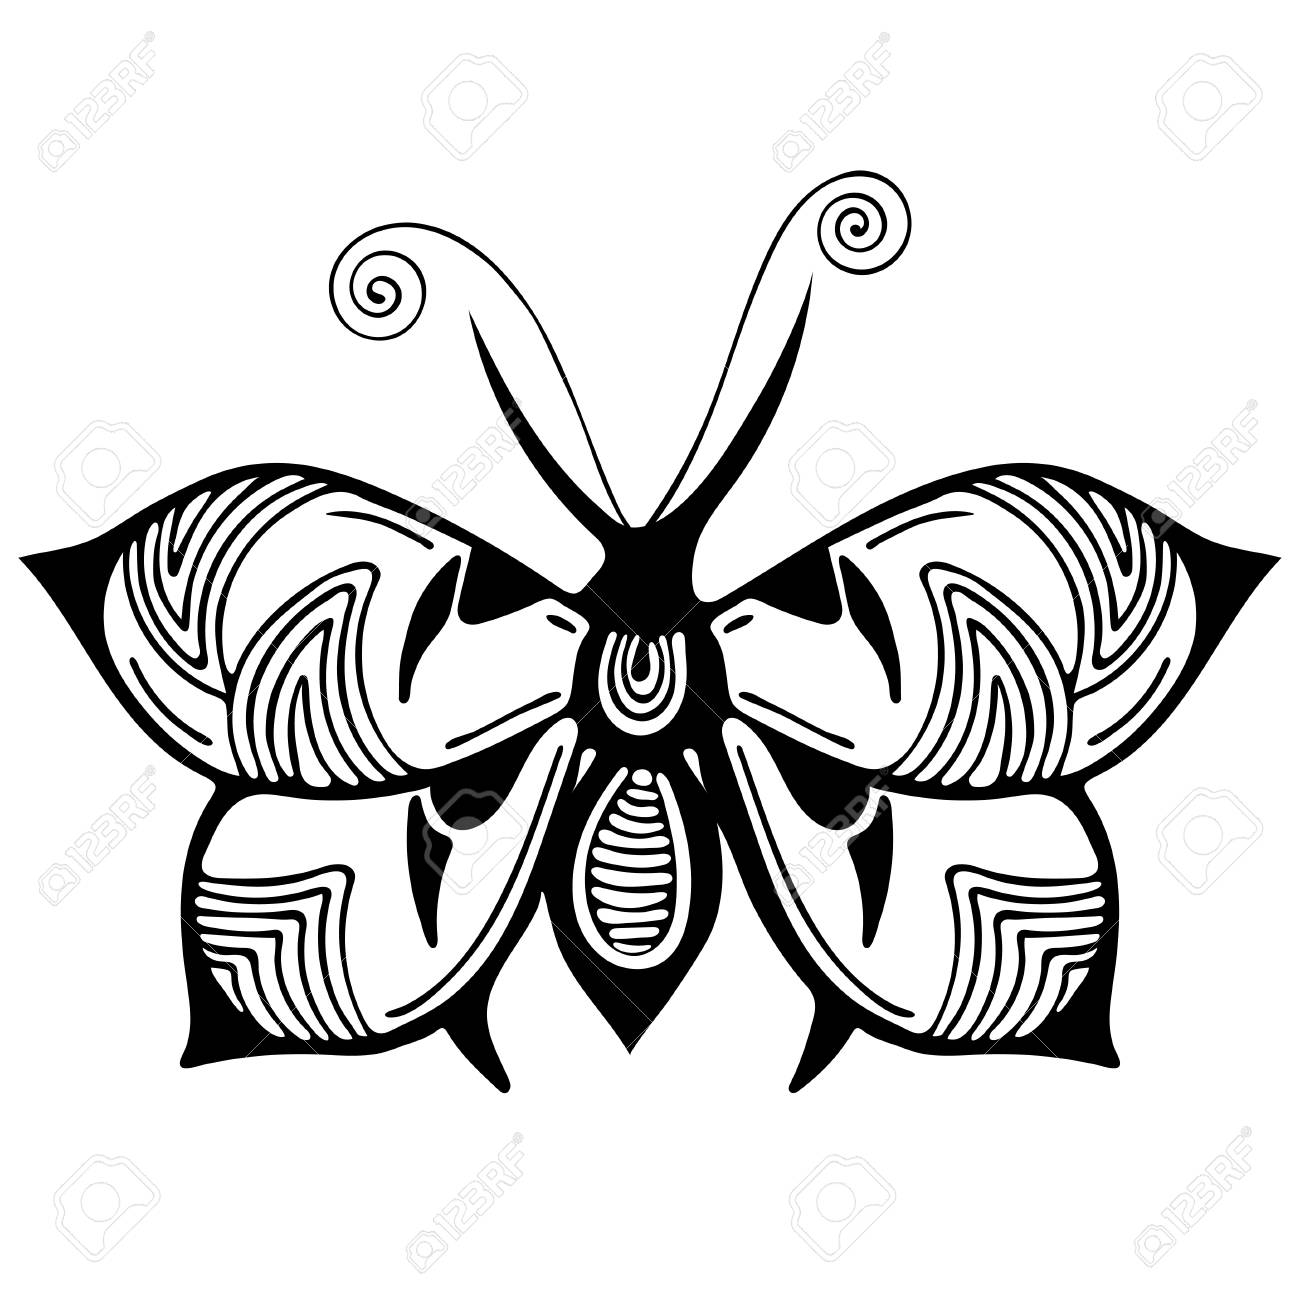 Abstract butterfly black and white drawing outline ornament